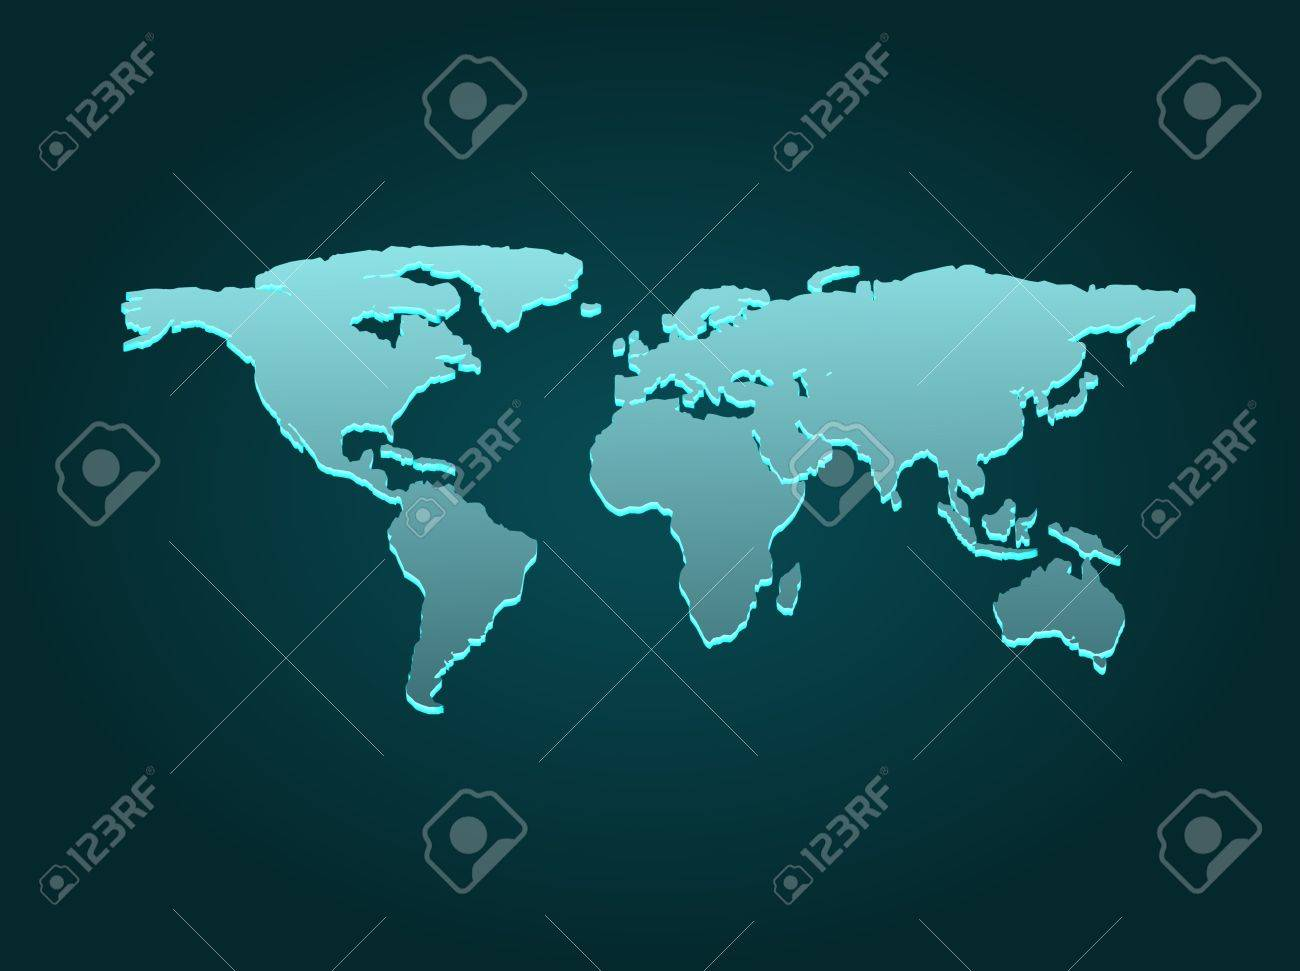 Blue business world map with countries borders fotos retratos blue business world map with countries borders foto de archivo 11788903 gumiabroncs